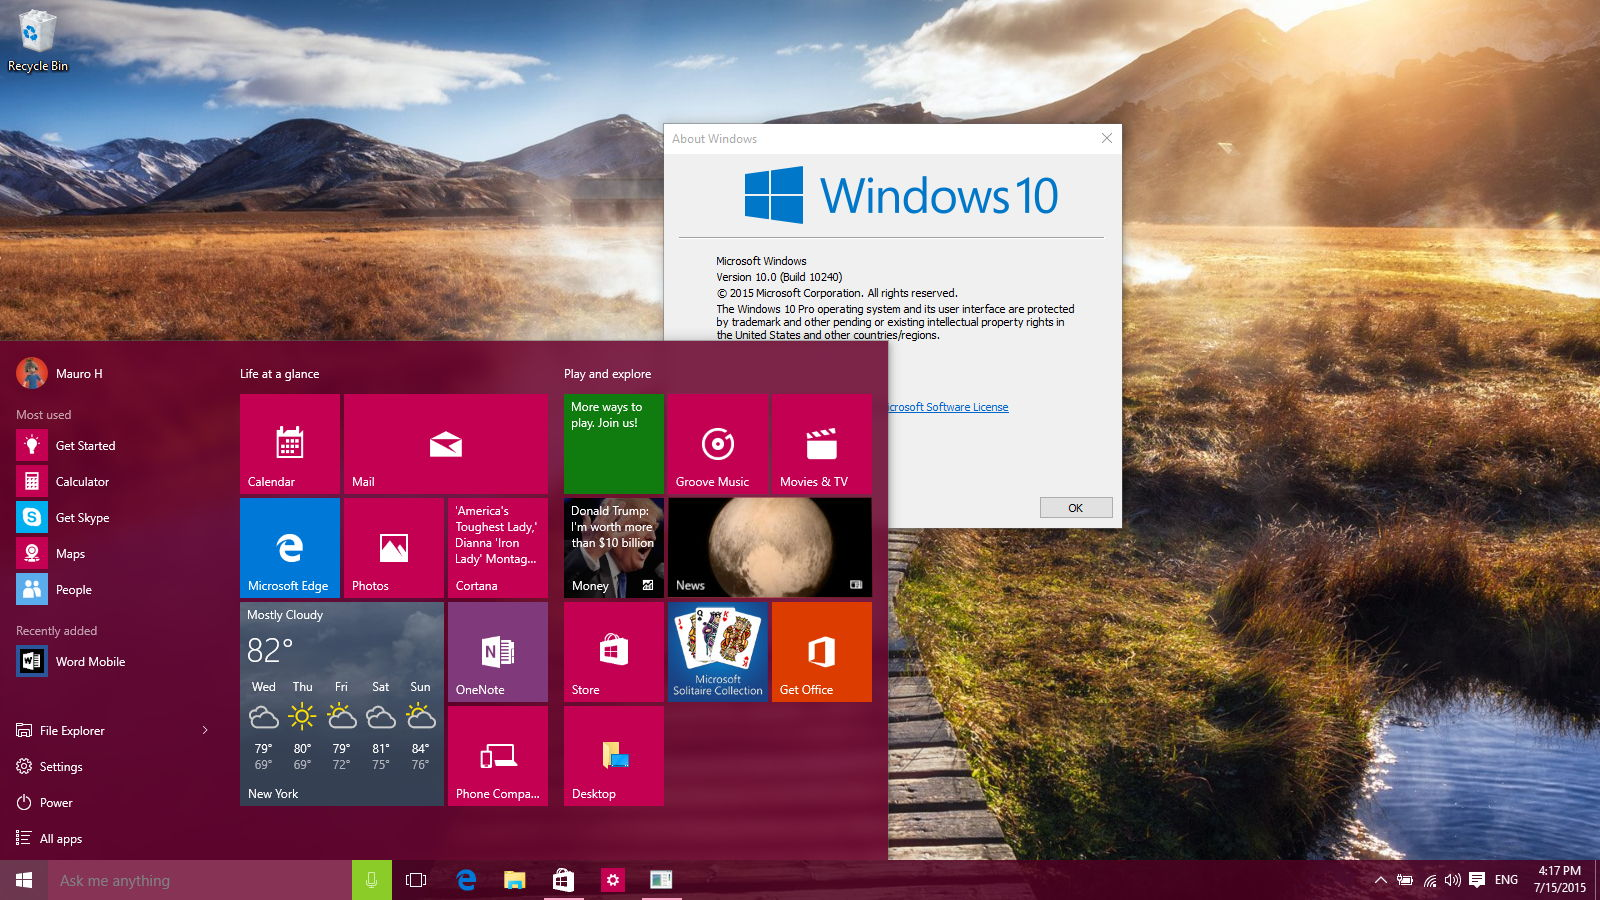 Windows 10 pro build 10240 iso 32 64 bit free download tech by spr windows 10 pro build 10240 iso 32 64 bit free download ccuart Choice Image